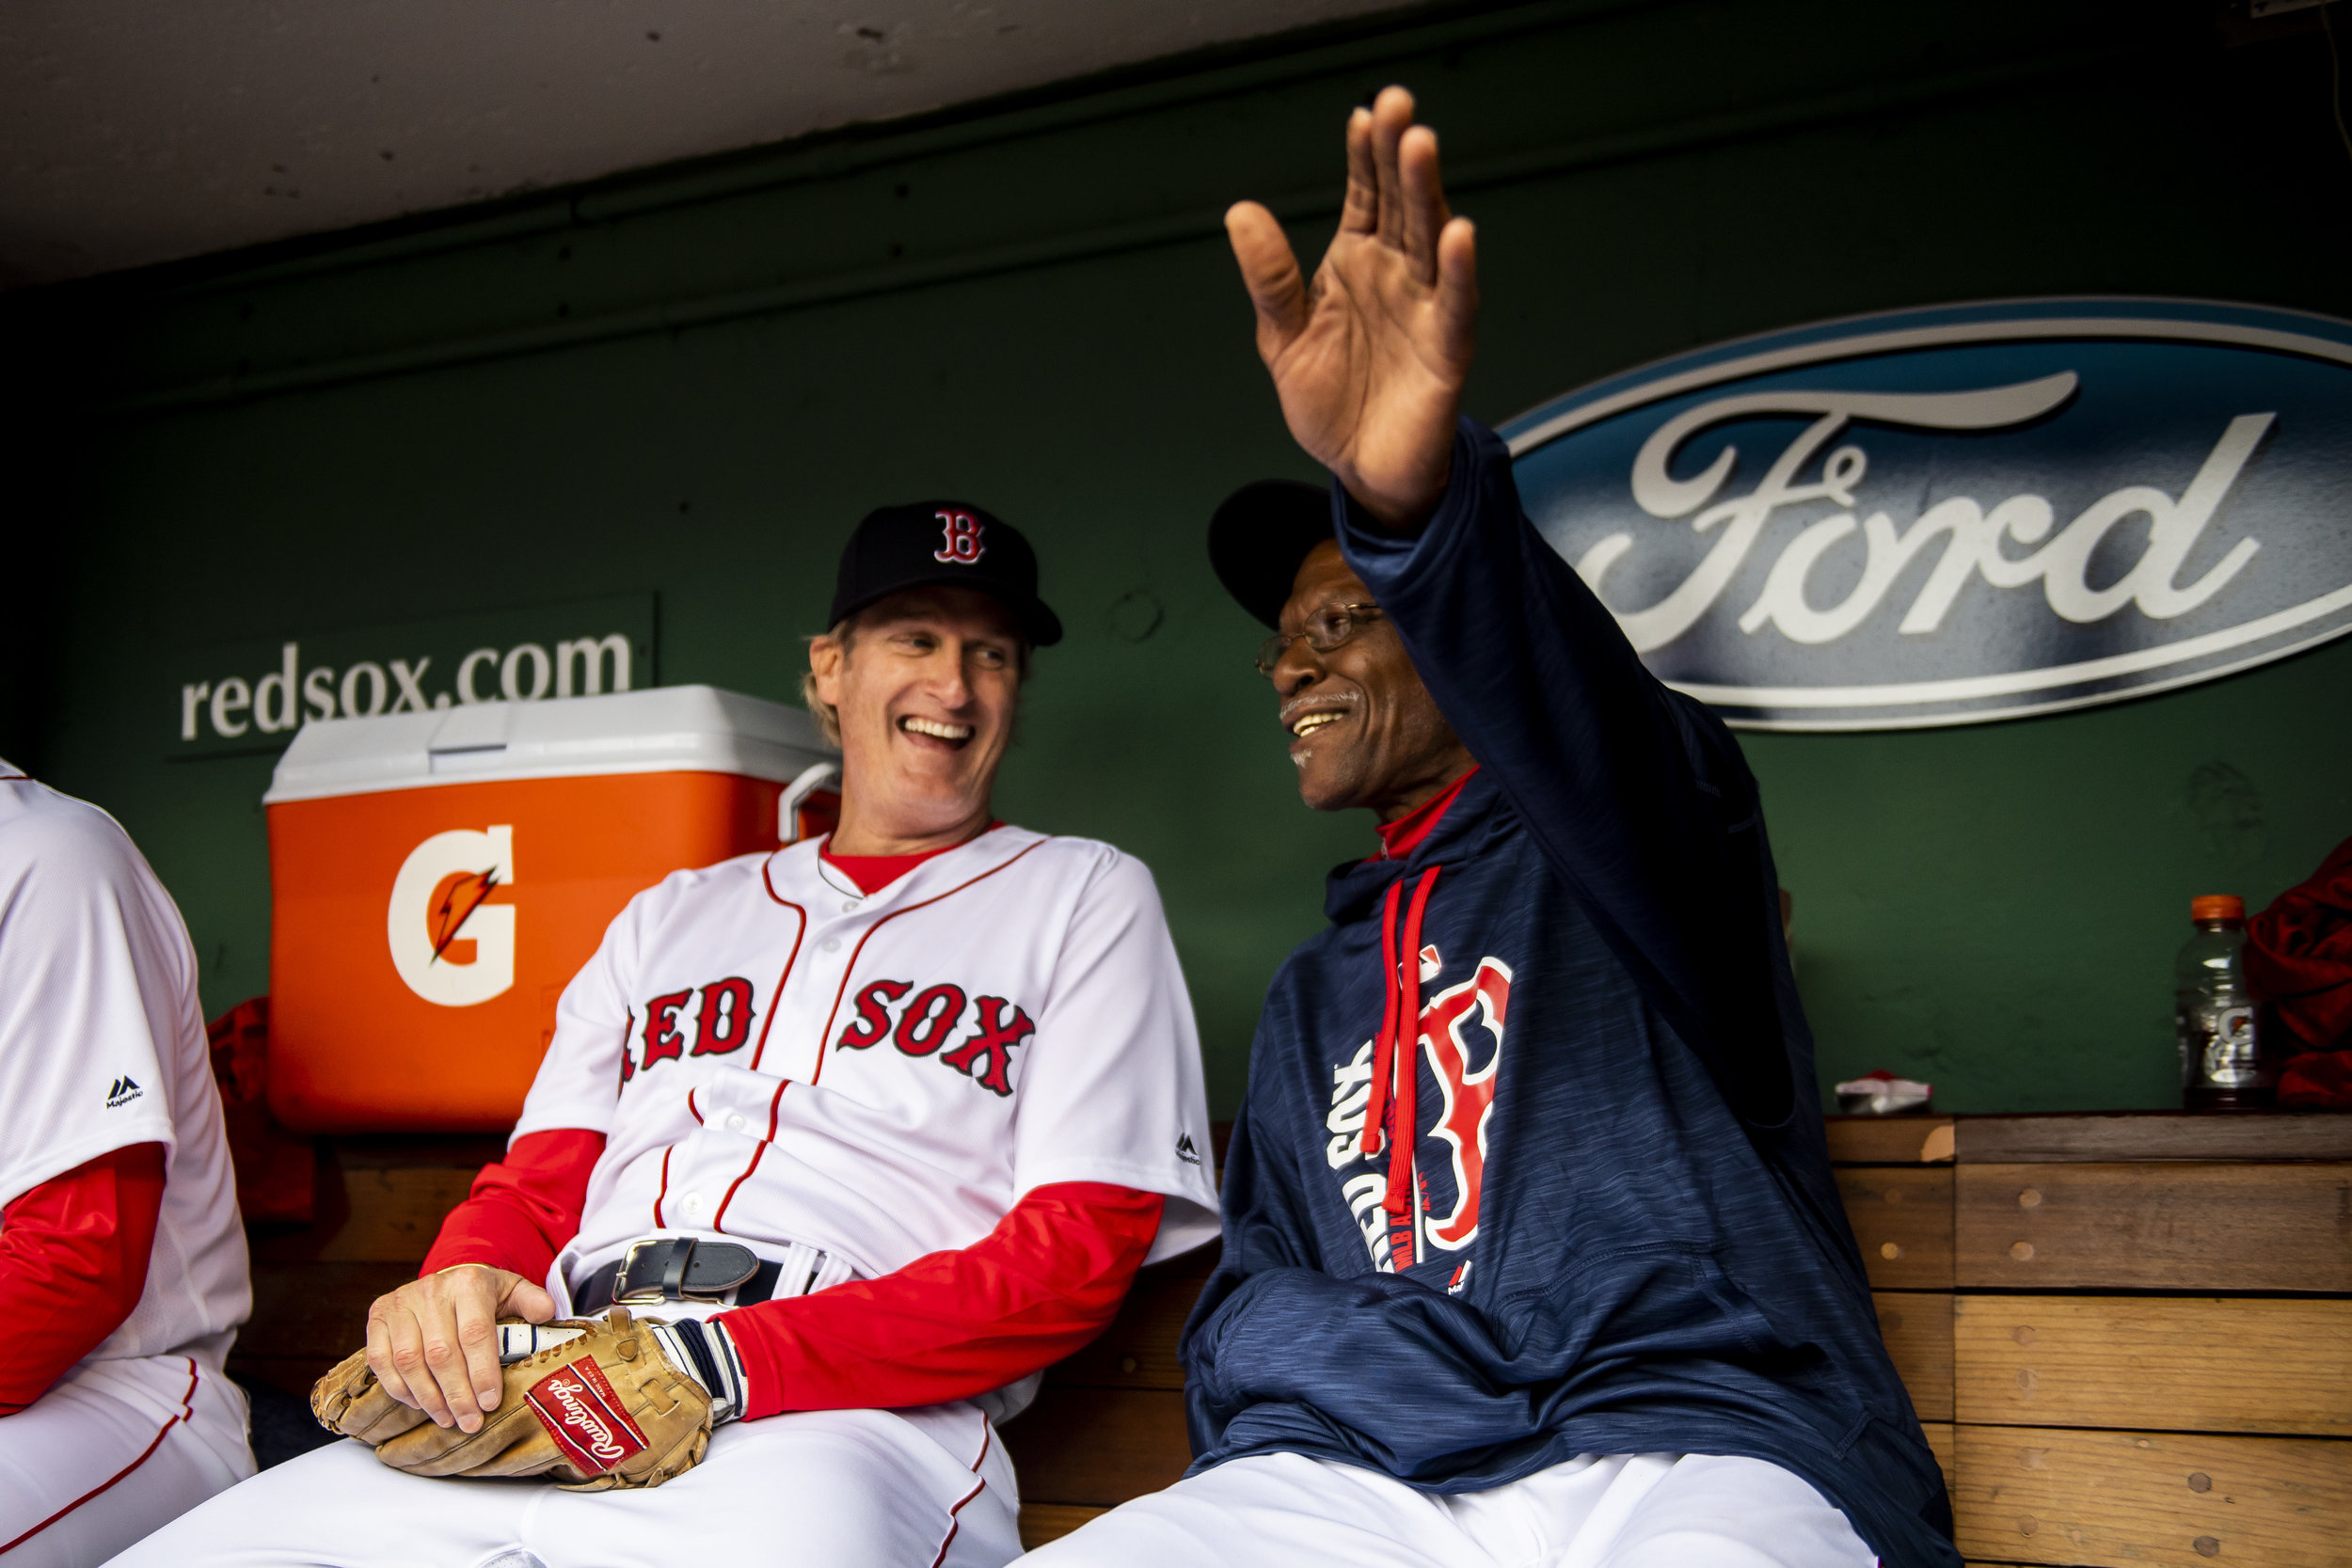 May 27, 2018, Boston, MA: Oil Can Boyd and Steve Lyons chat during the Red Sox Alumni Game at Fenway Park in Boston, Massachusetts on Sunday, May 27, 2018. (Photo by Matthew Thomas/Boston Red Sox)